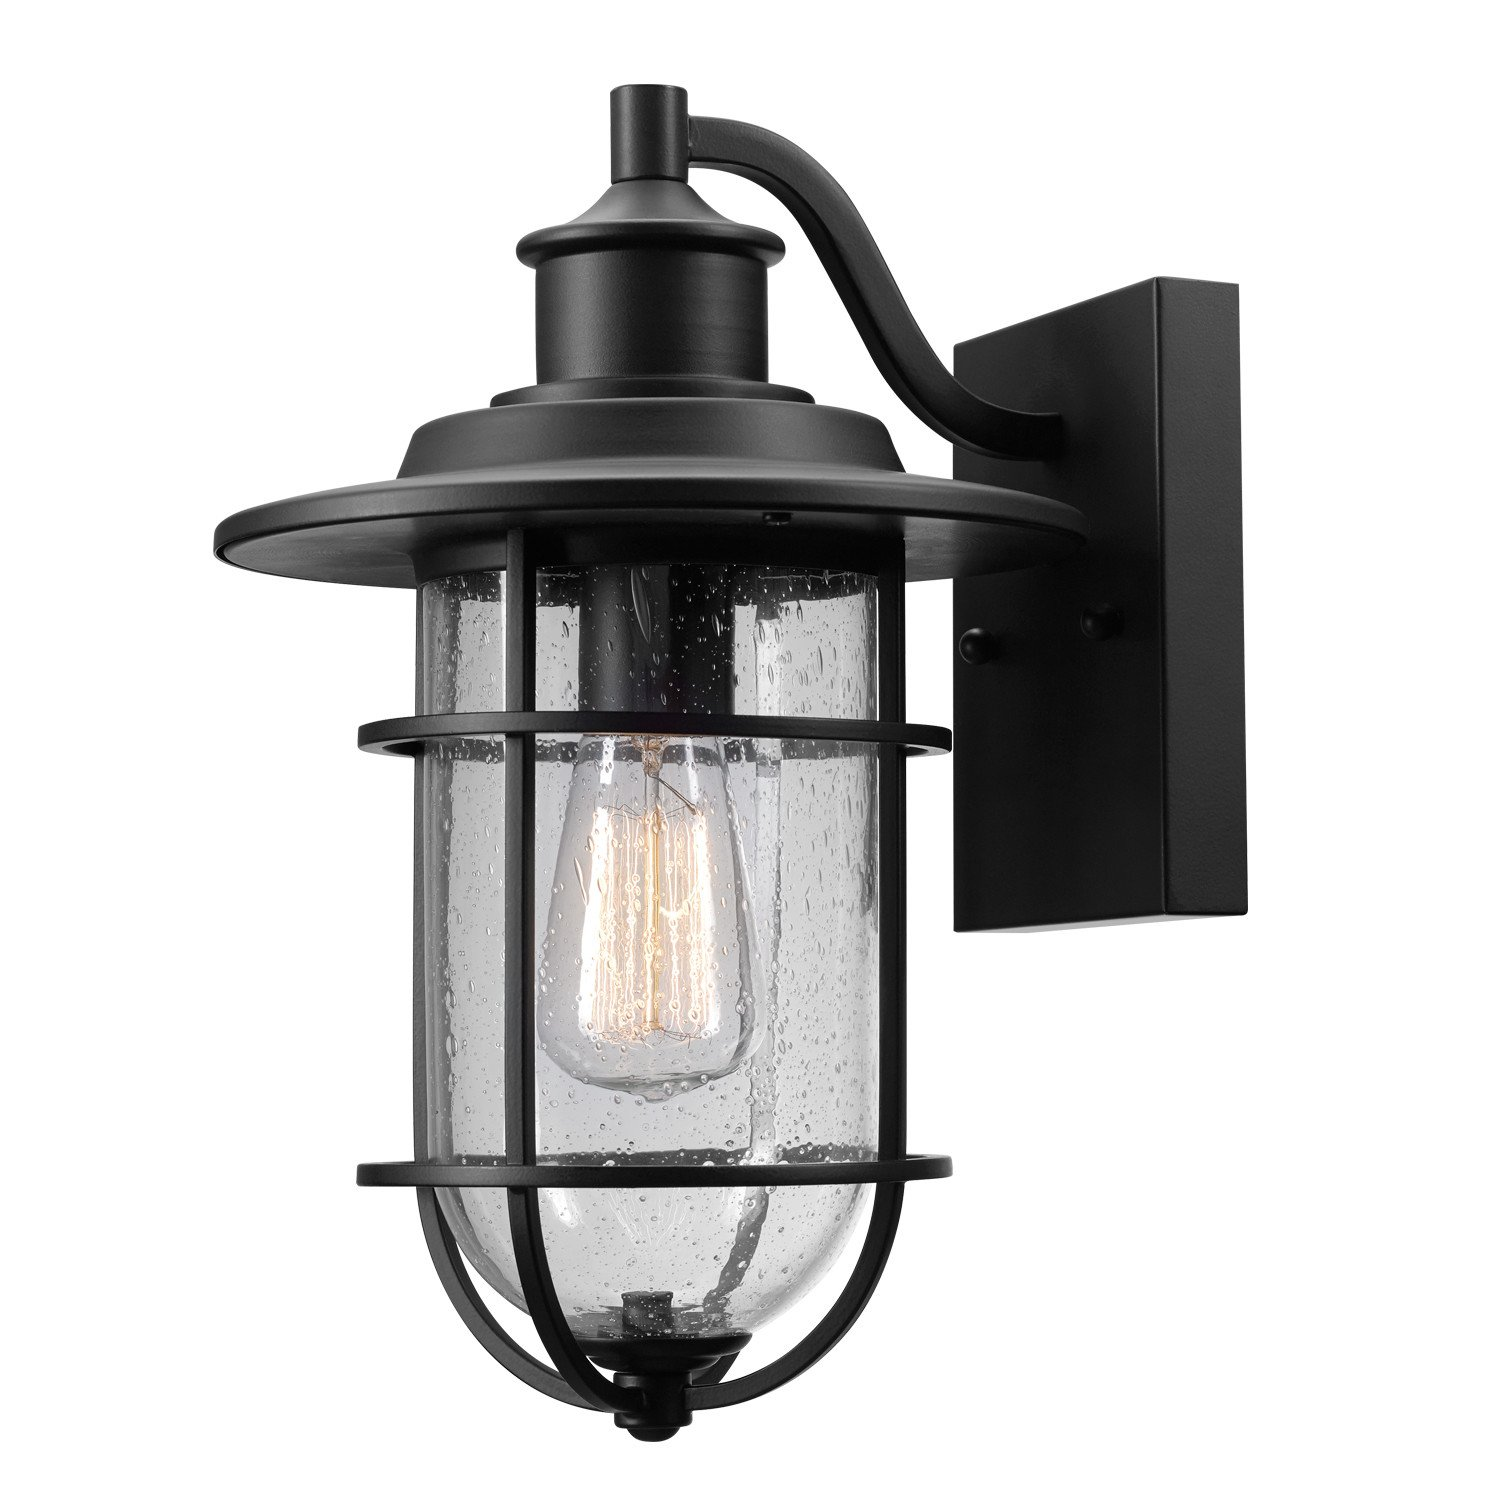 Globe Electric 44094 Morrissey 1-Light Outdoor Wall Sconce